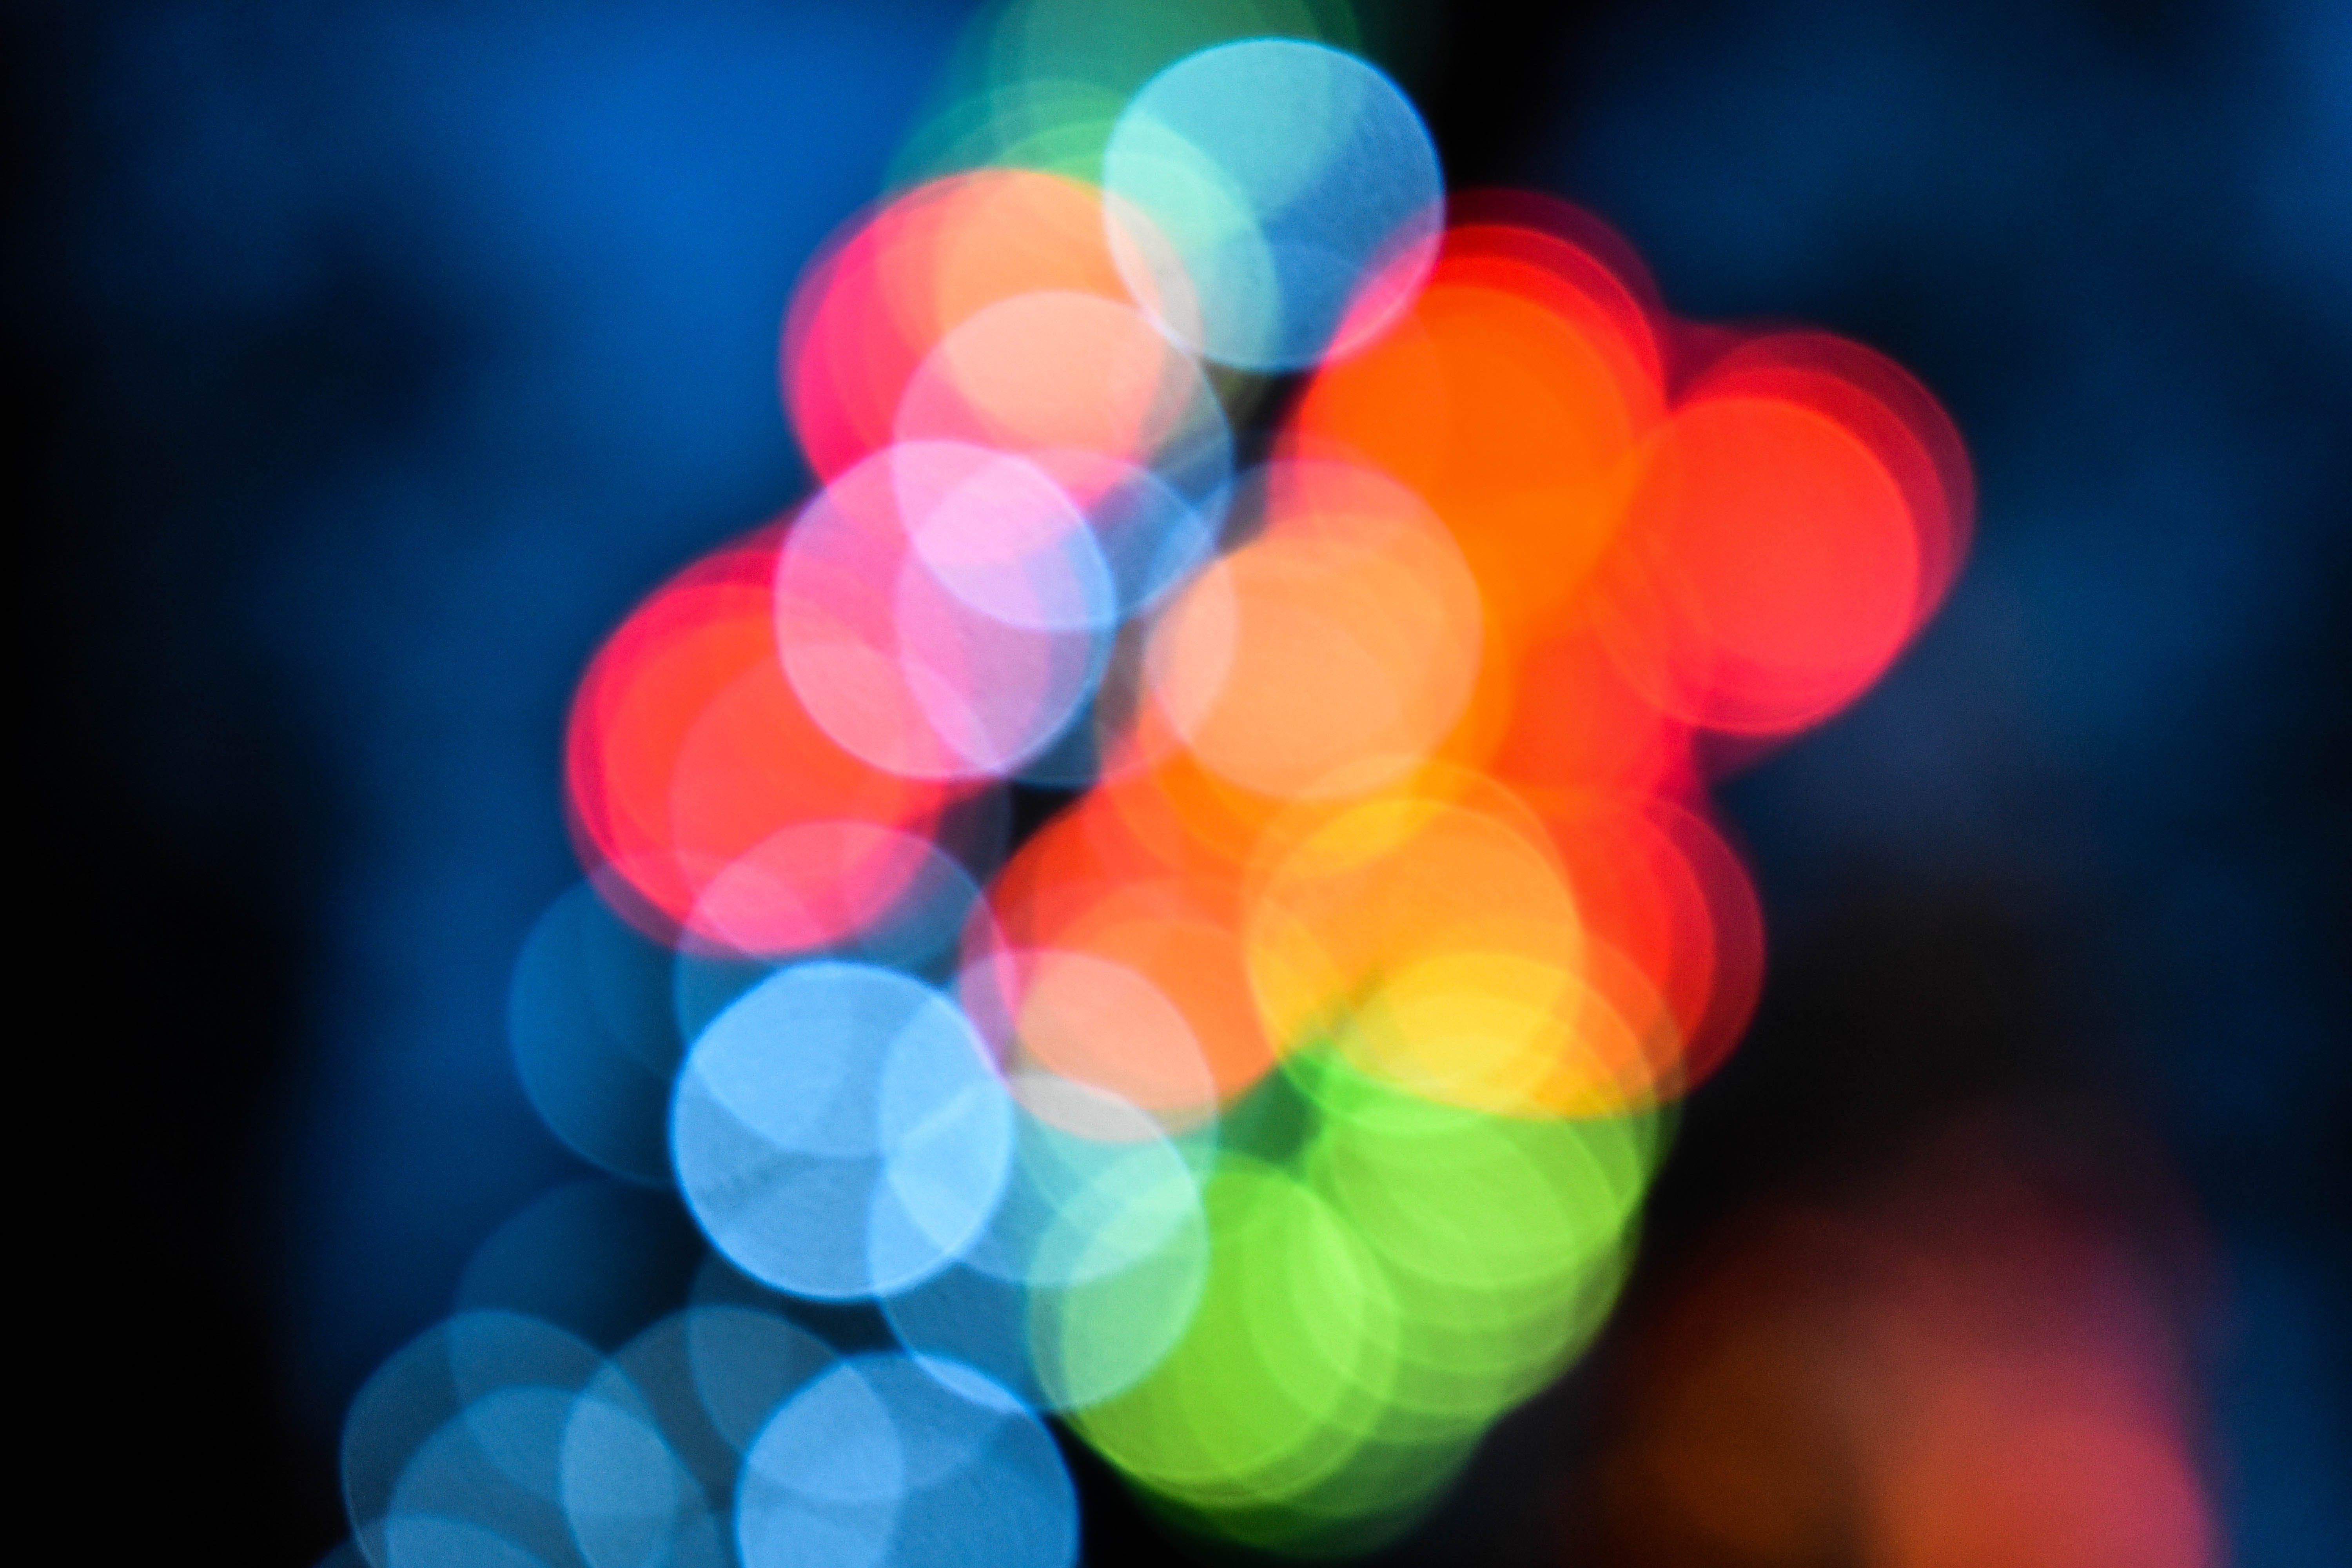 Free stock photo of lights, blurred background